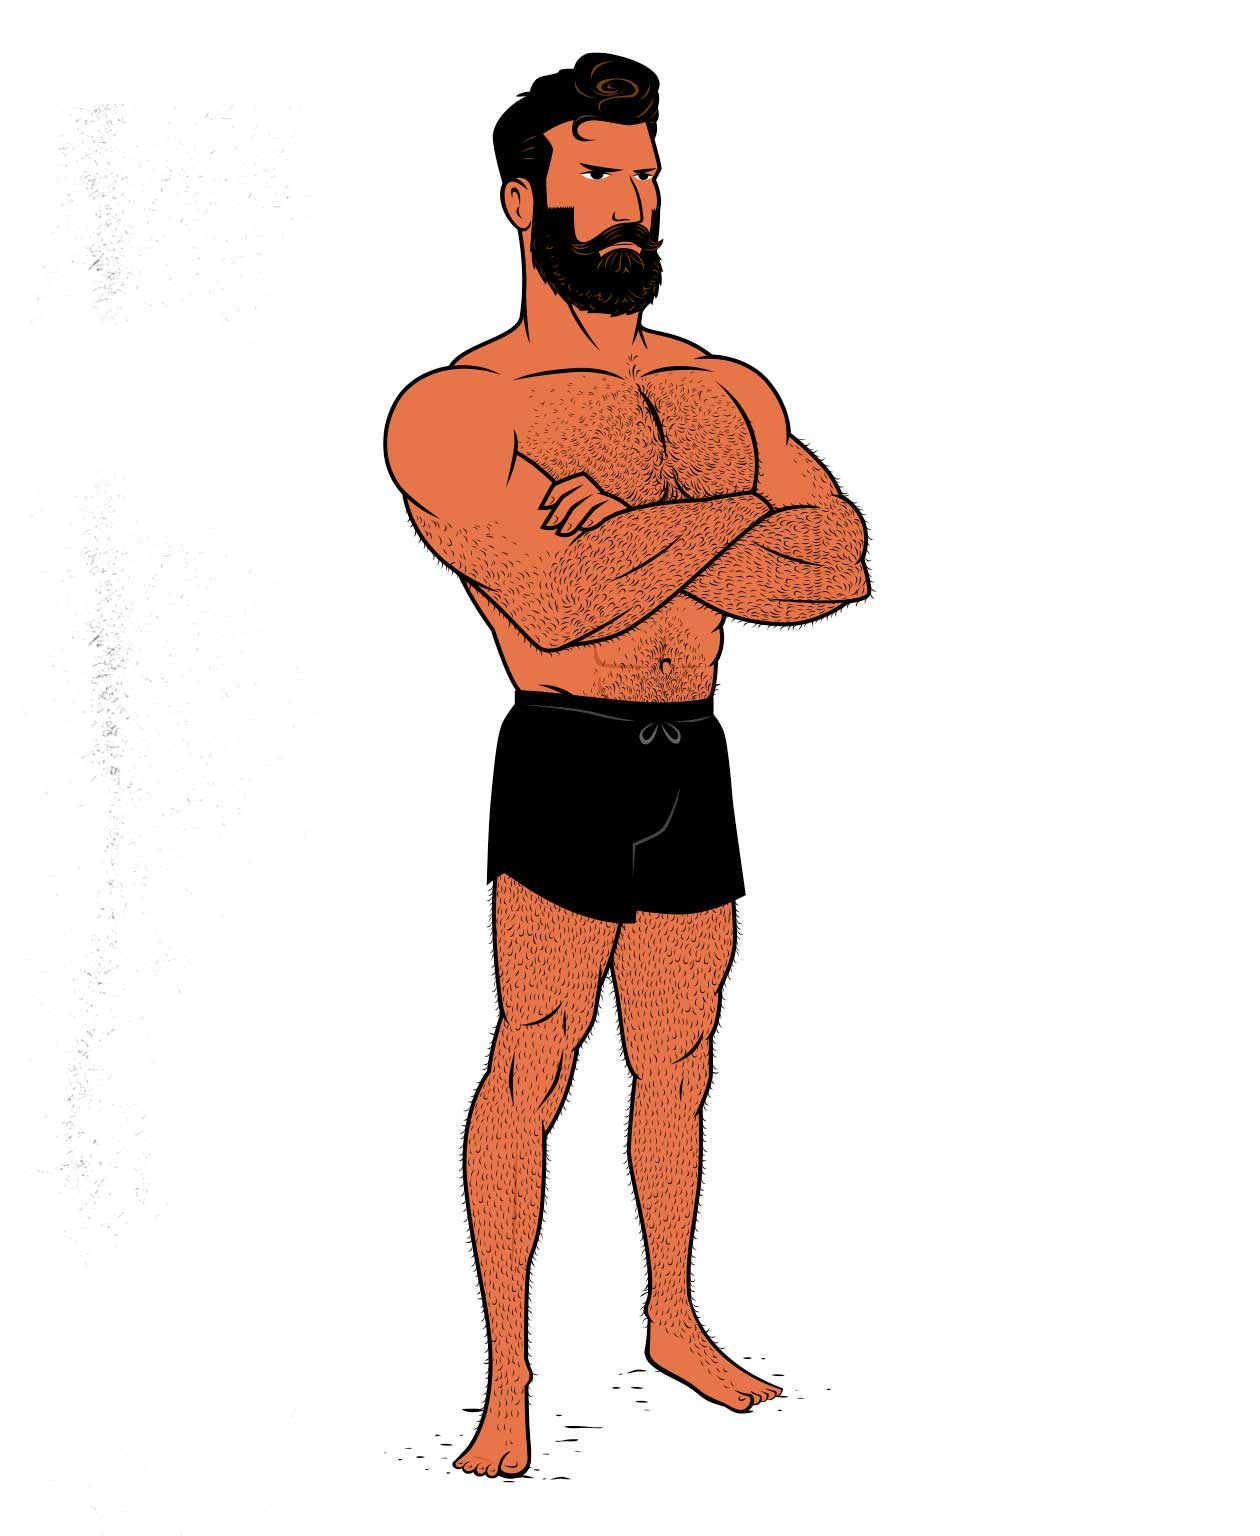 Illustration showing a bodybuilder who's lean and muscular, hovering around his natural body fat percentage.